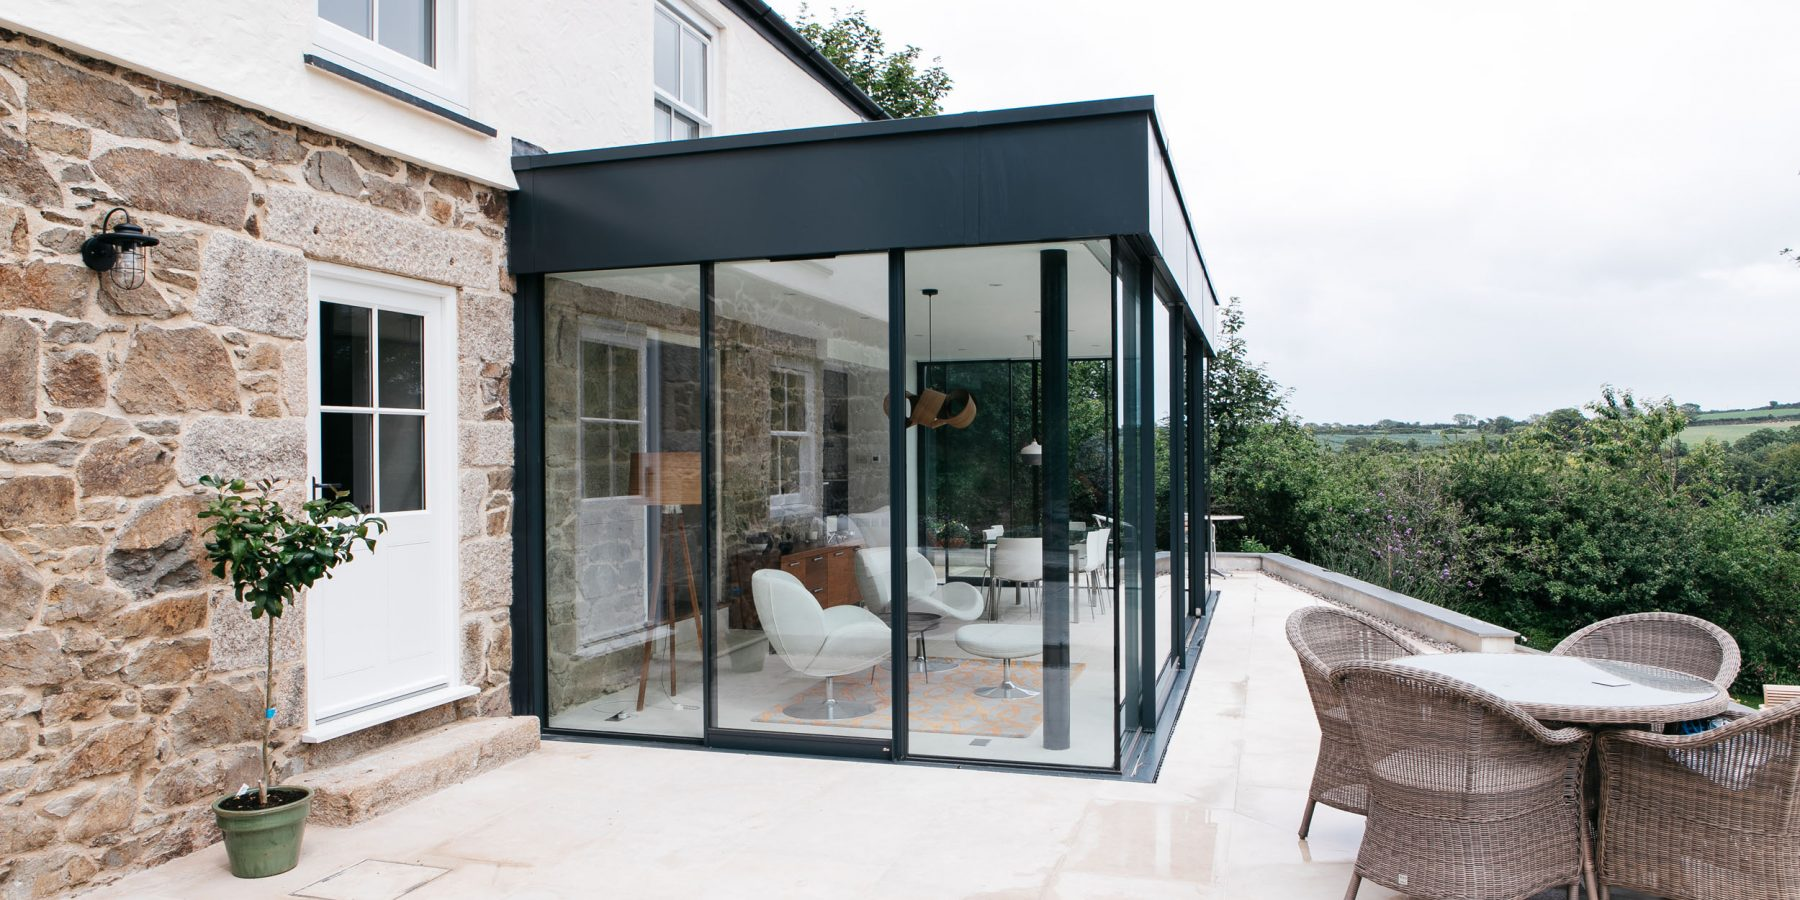 Glass conservatory on the exterior of a house